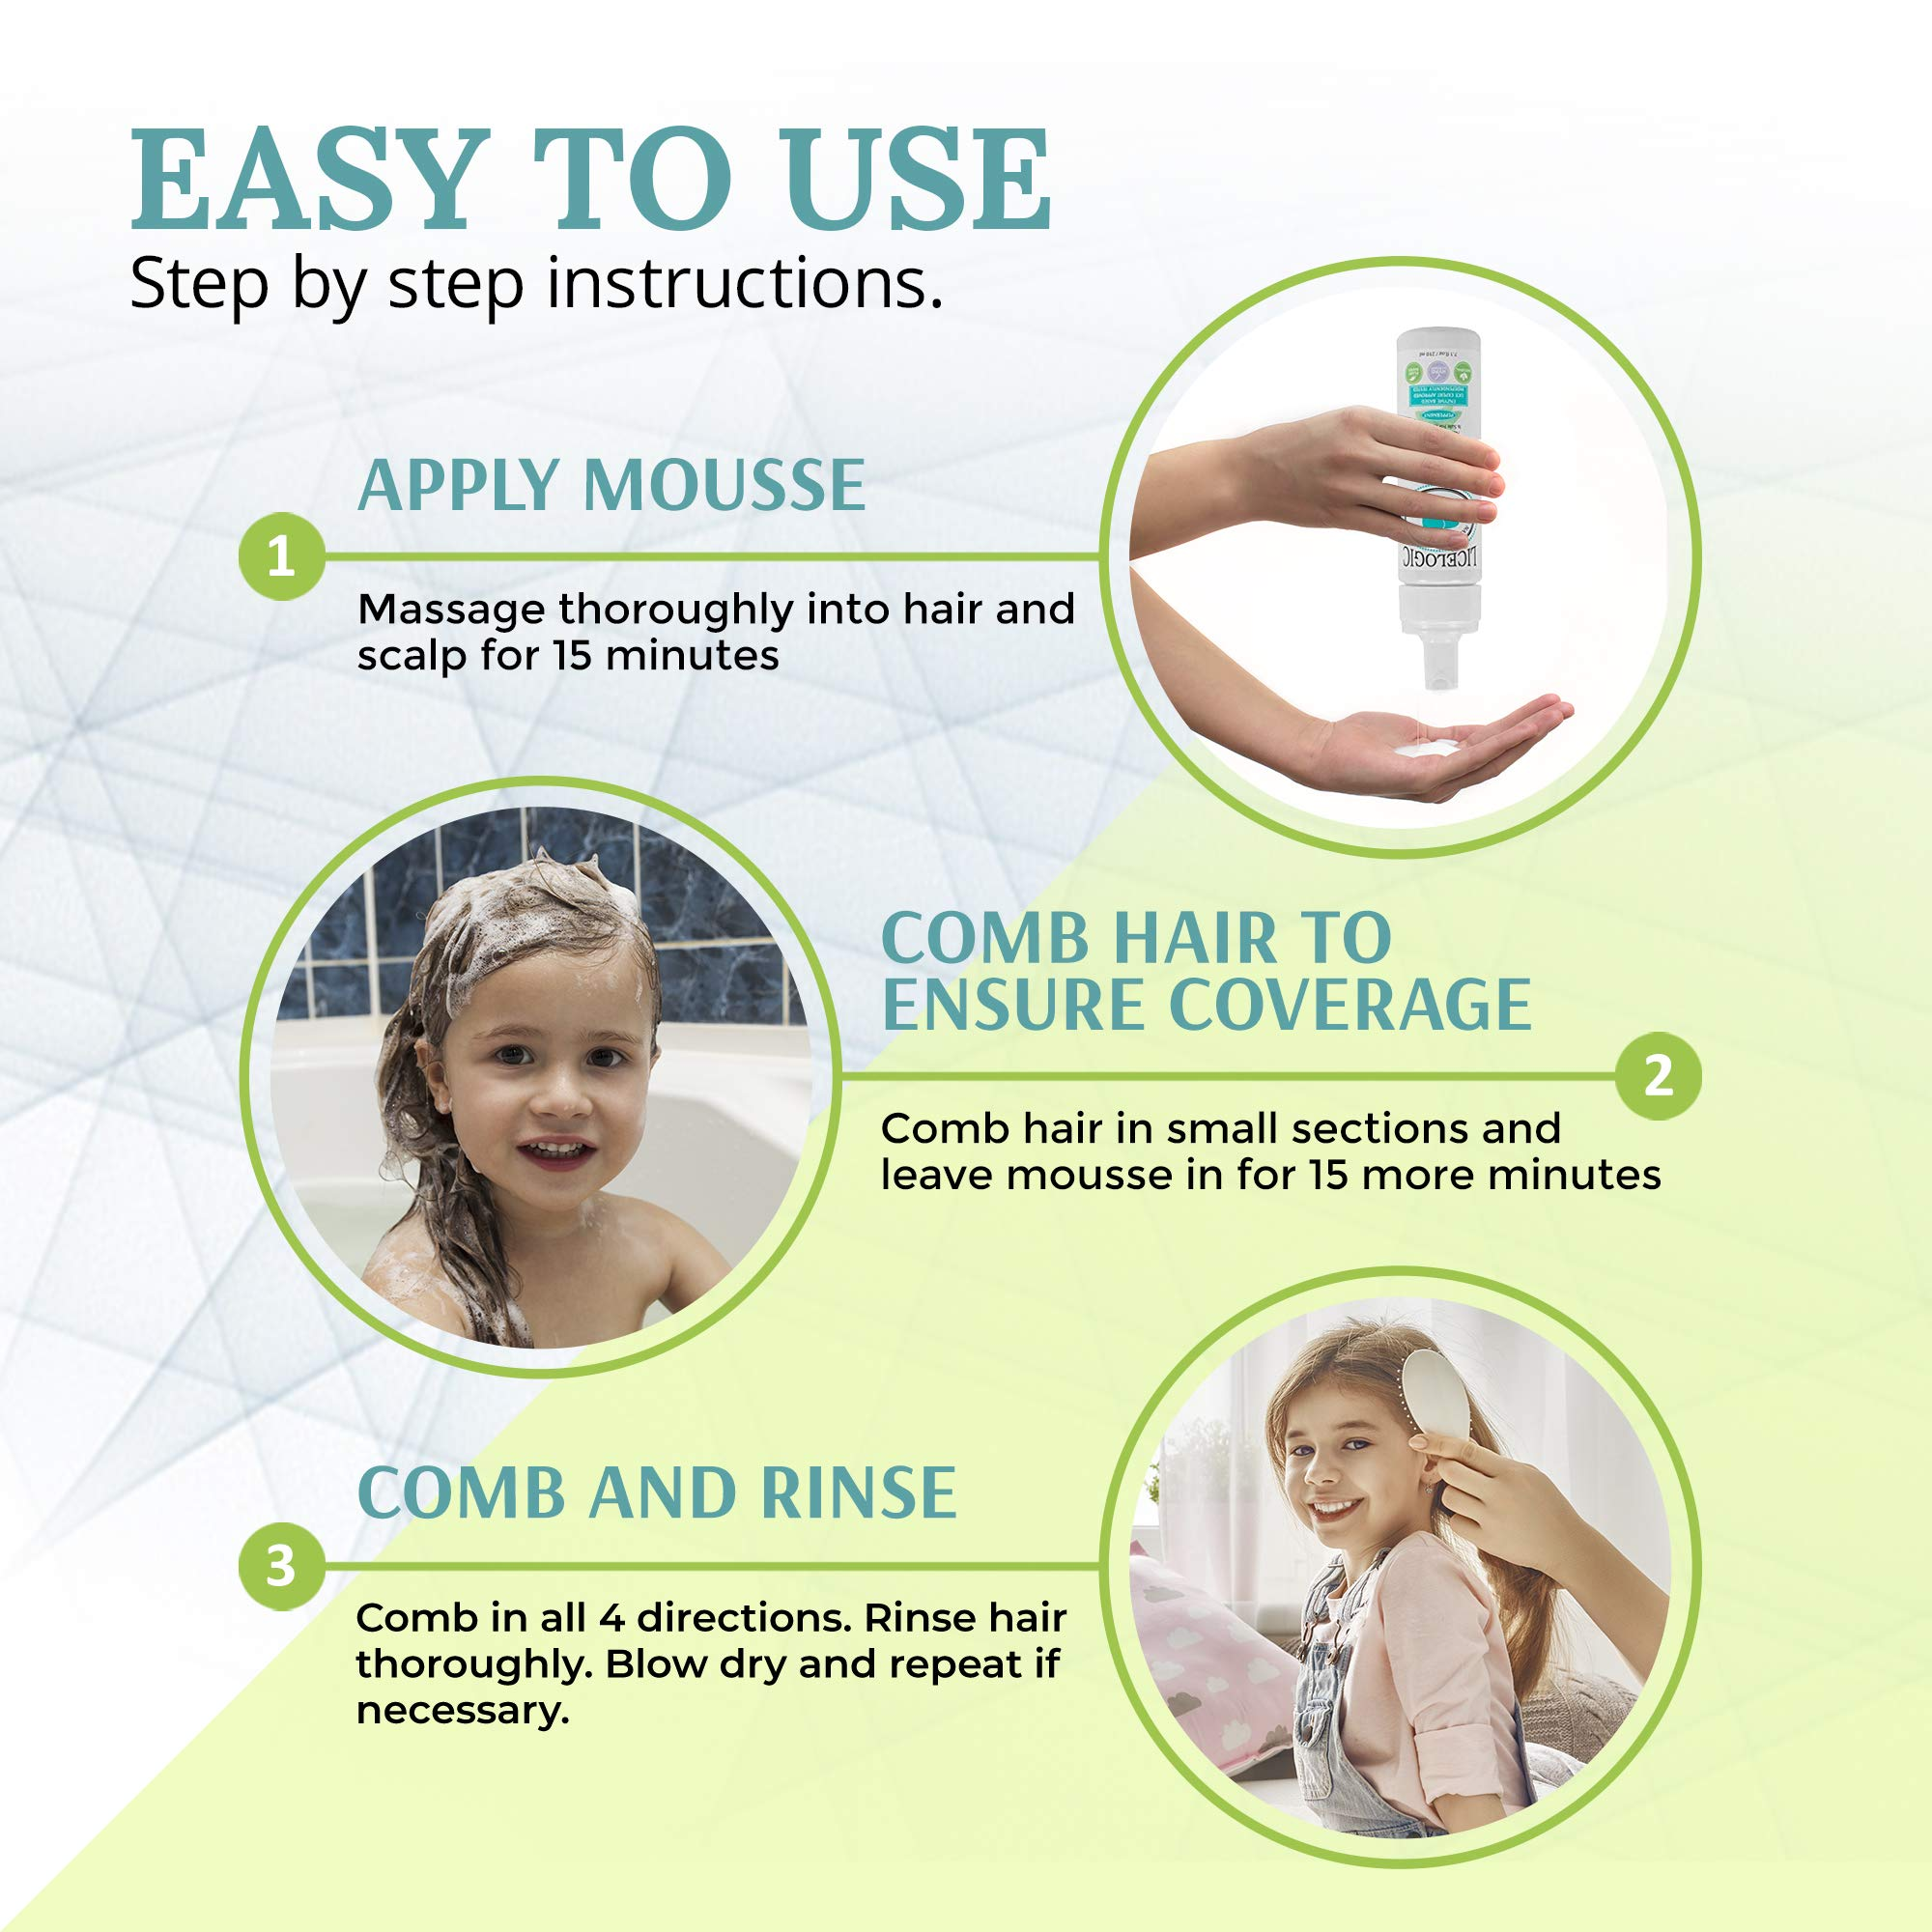 LiceLogic Family Sized Lice Treatment Kit - Natural, Safe, Hypoallergenic Super Lice & Nit Treatment Kit - Shampoo, Hair Spray, Household Spray and Comb - Peppermint by LiceLogic